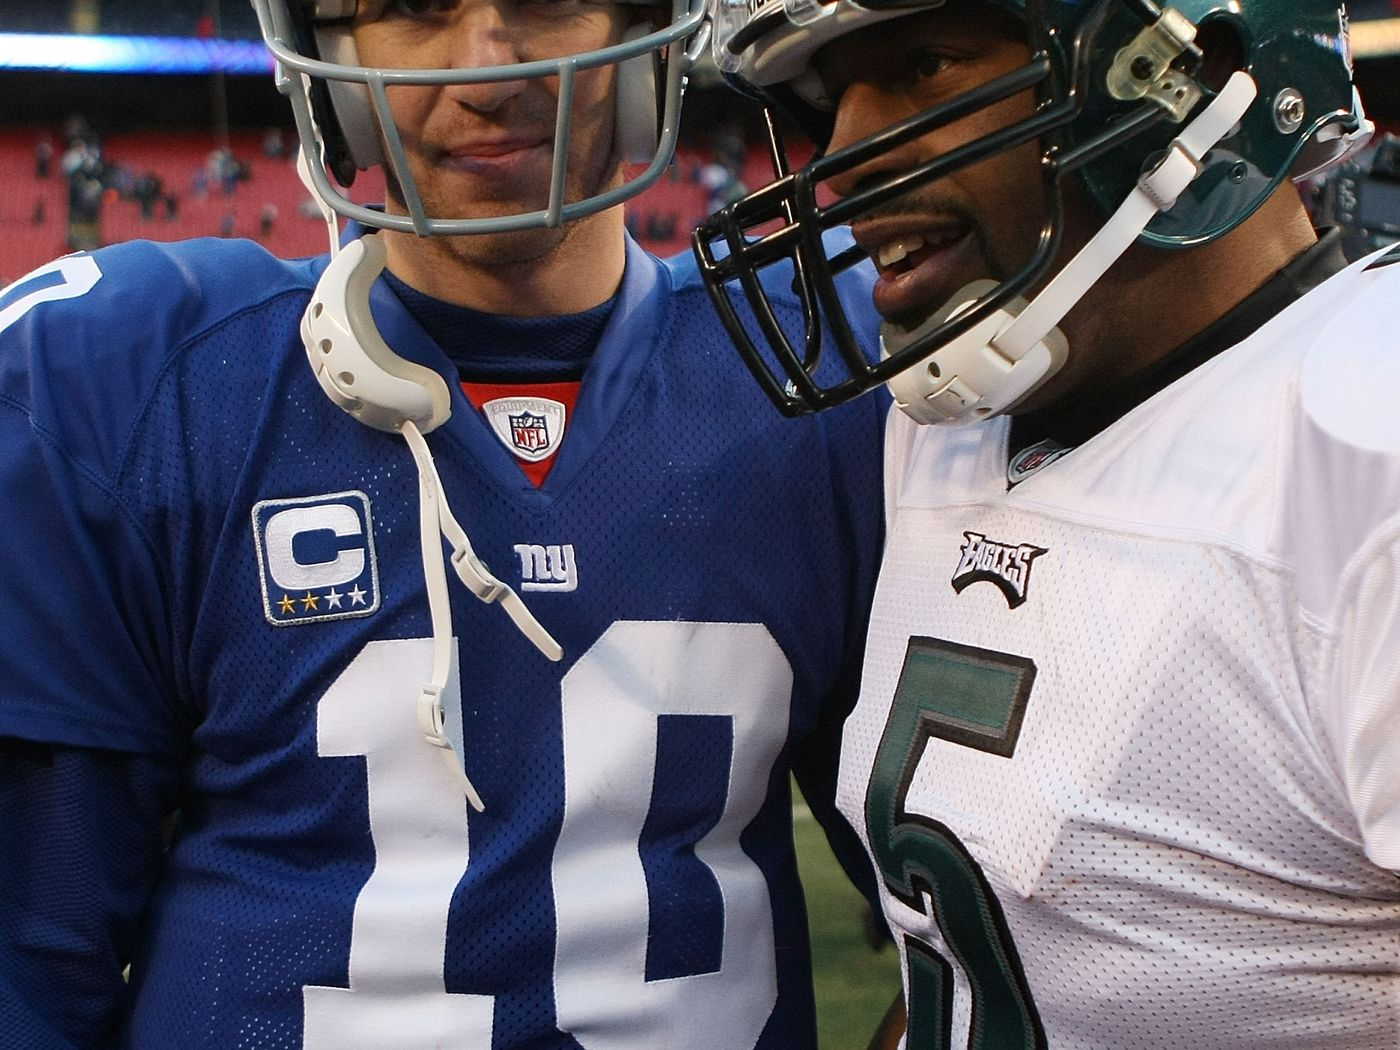 b71aa9a8f70 Eagles News: One stat that perfectly sums up Philadelphia's dominance over  the Giants - Bleeding Green Nation